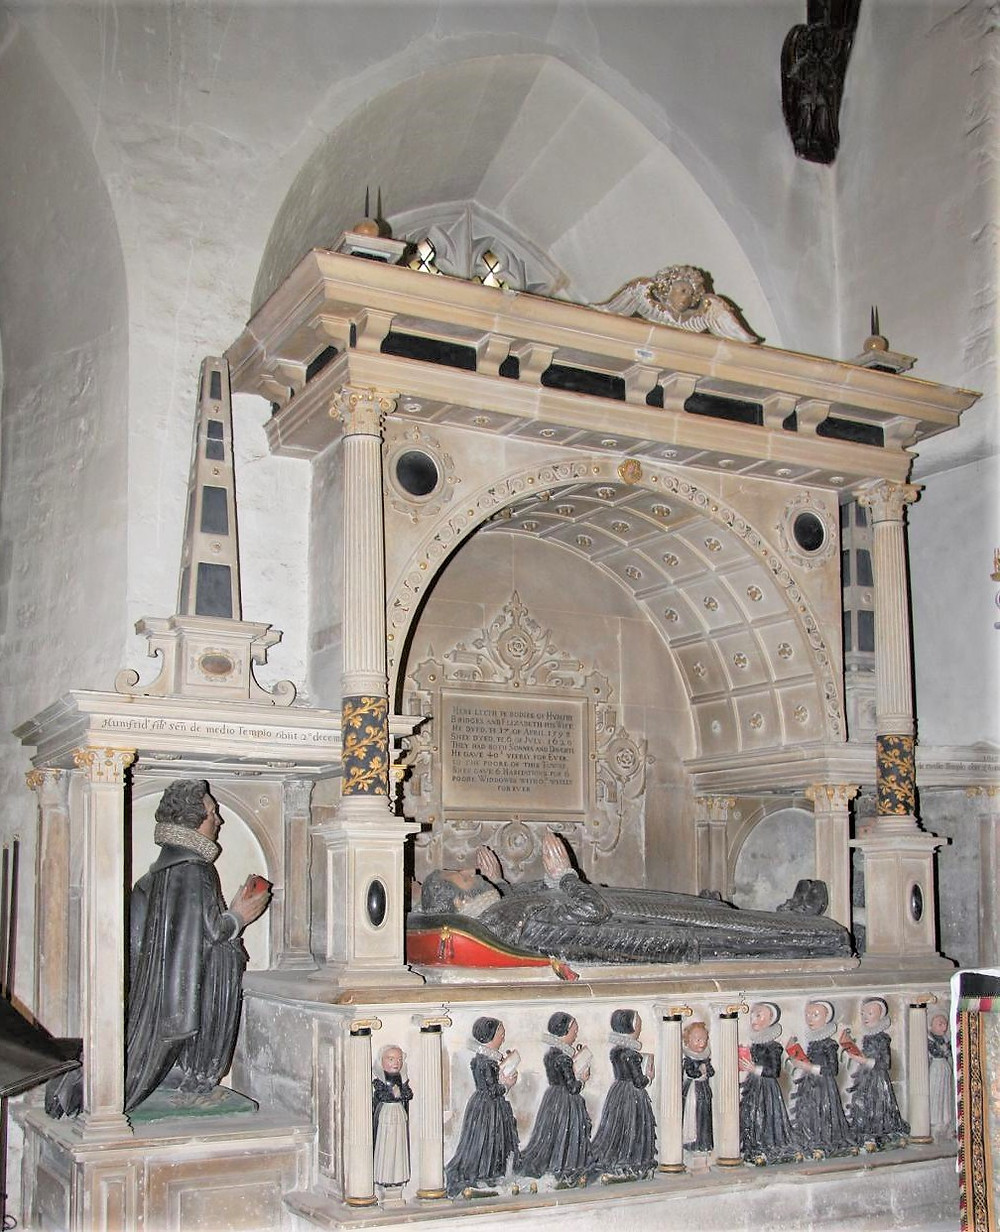 17th century tomb of Humfry Bridges in Cathedral of the Cotswolds, St. John the Baptist in Cirencester of the Cotswolds